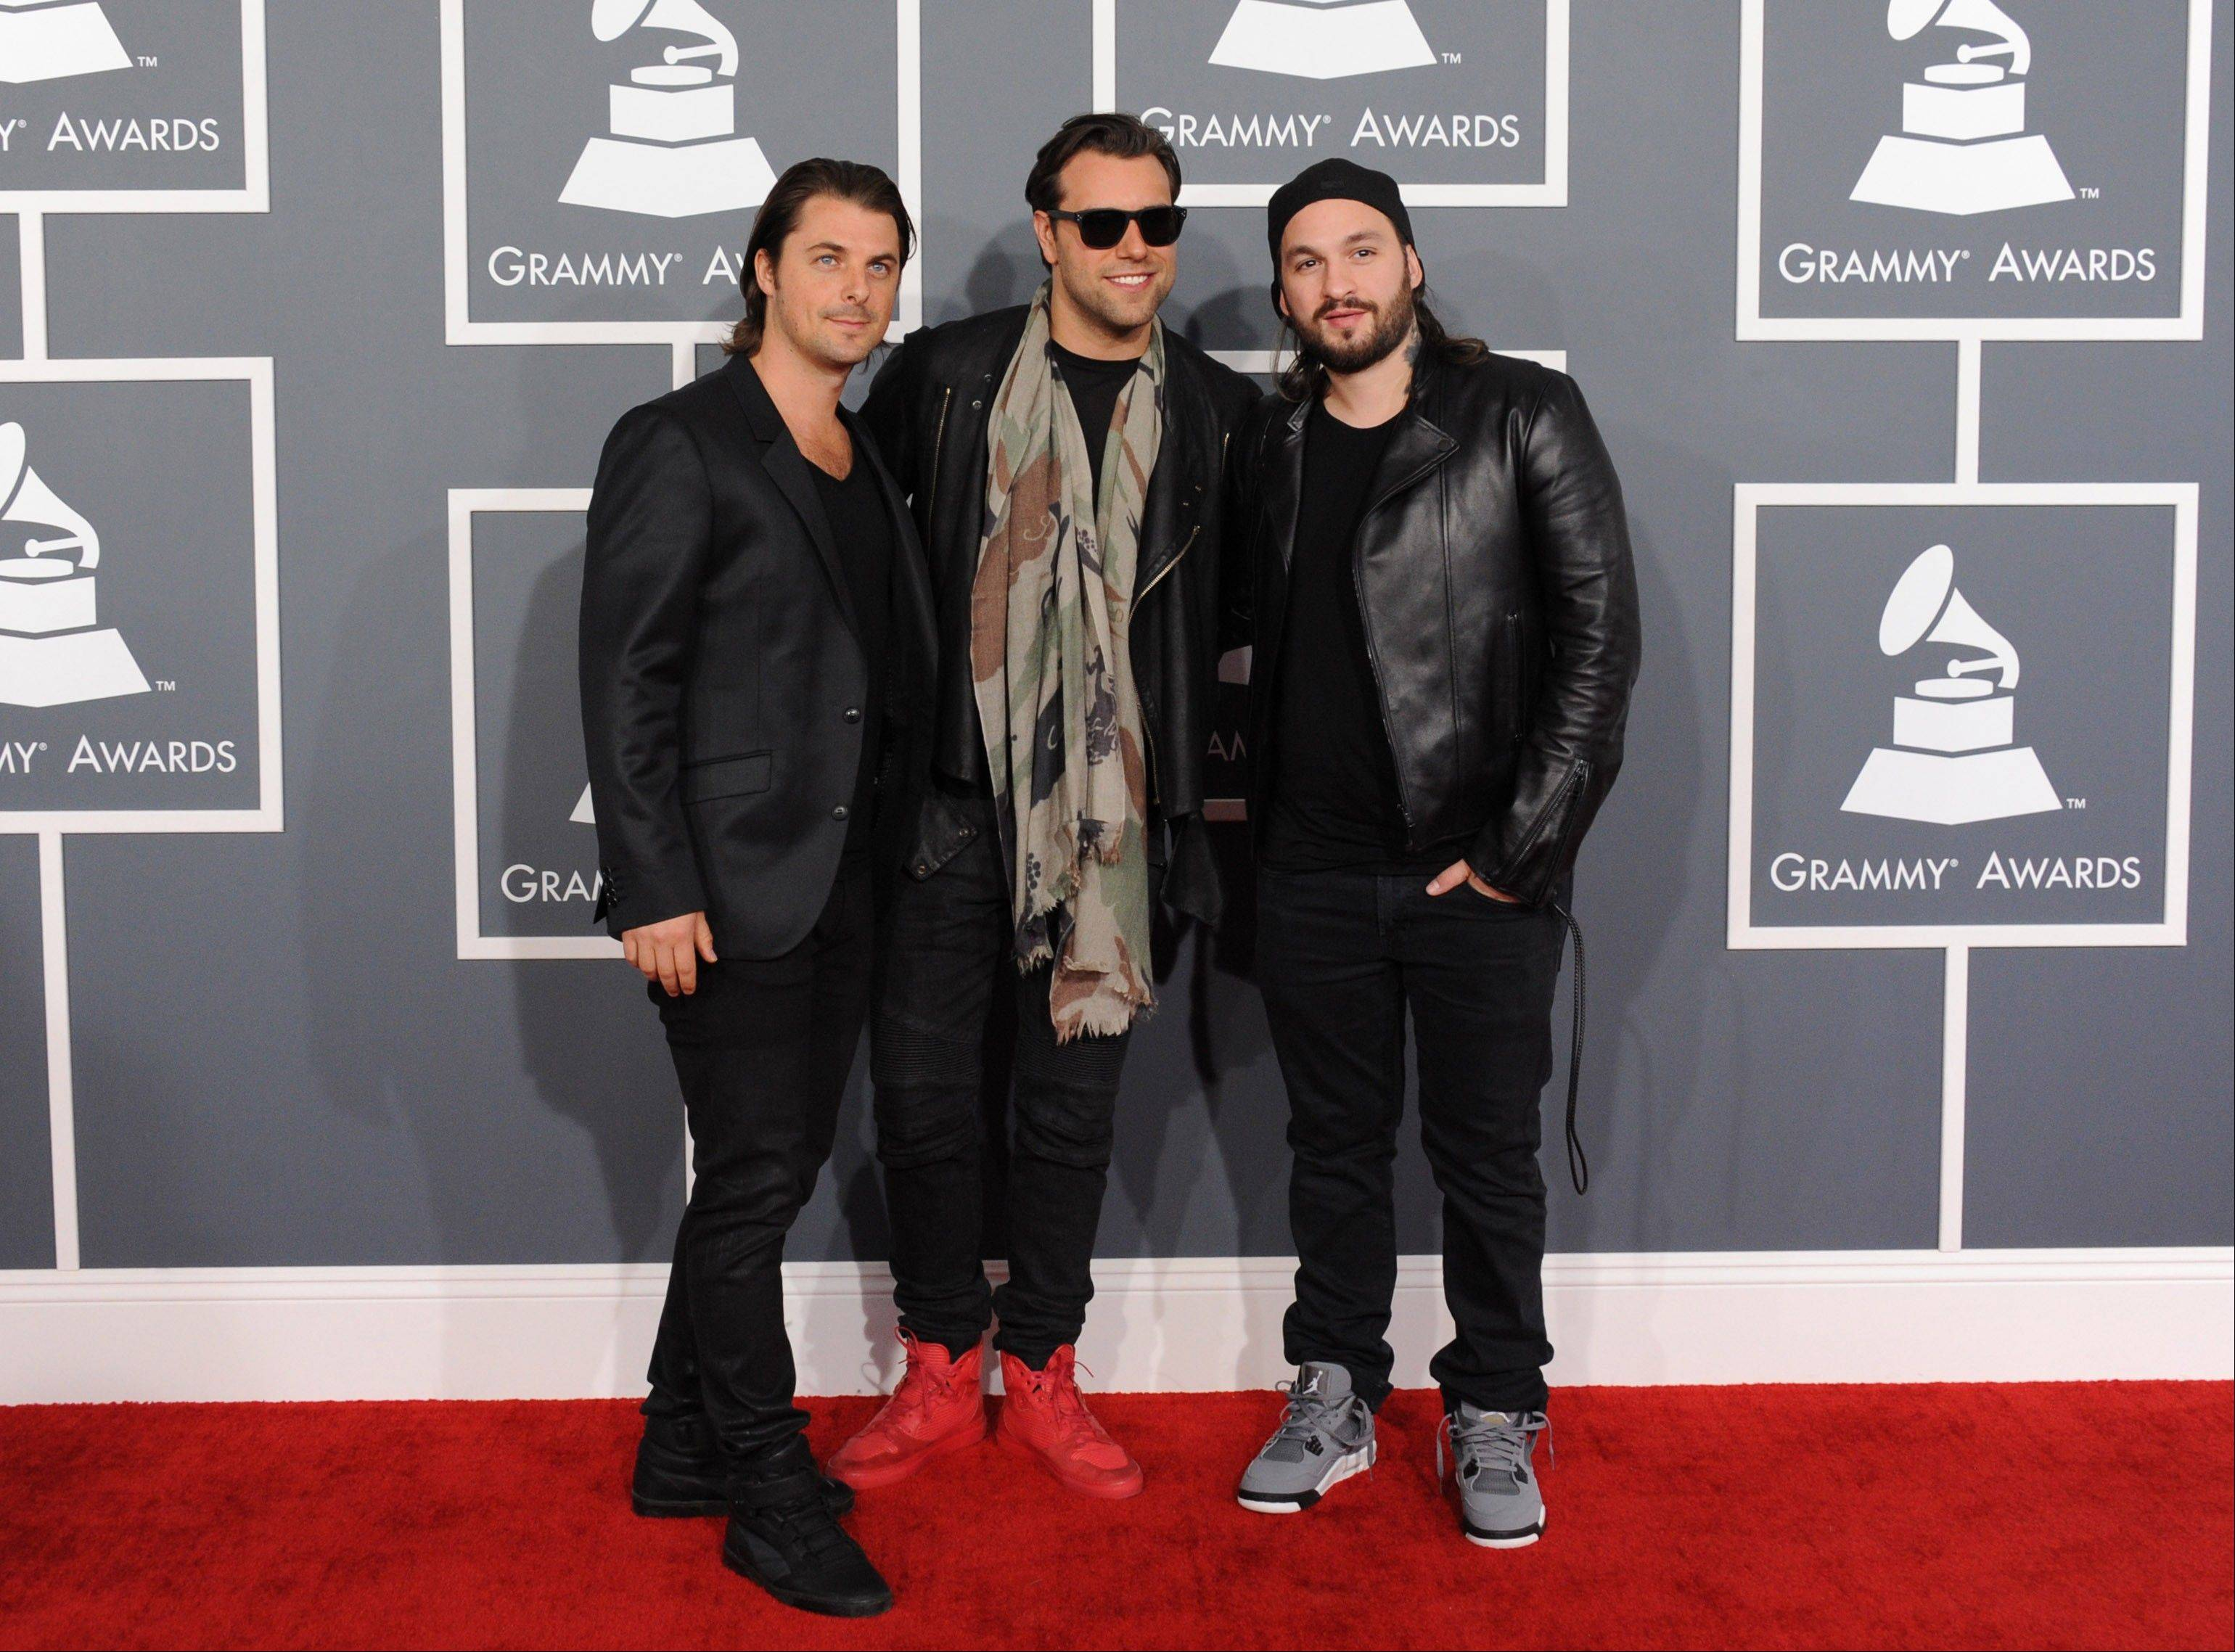 Swedish House Mafia, from left, Axwell, Steve, Sebastian Ingrosso, and Steve Angello arrive at the 55th annual Grammy Awards on Sunday, Feb. 10, 2013, in Los Angeles.